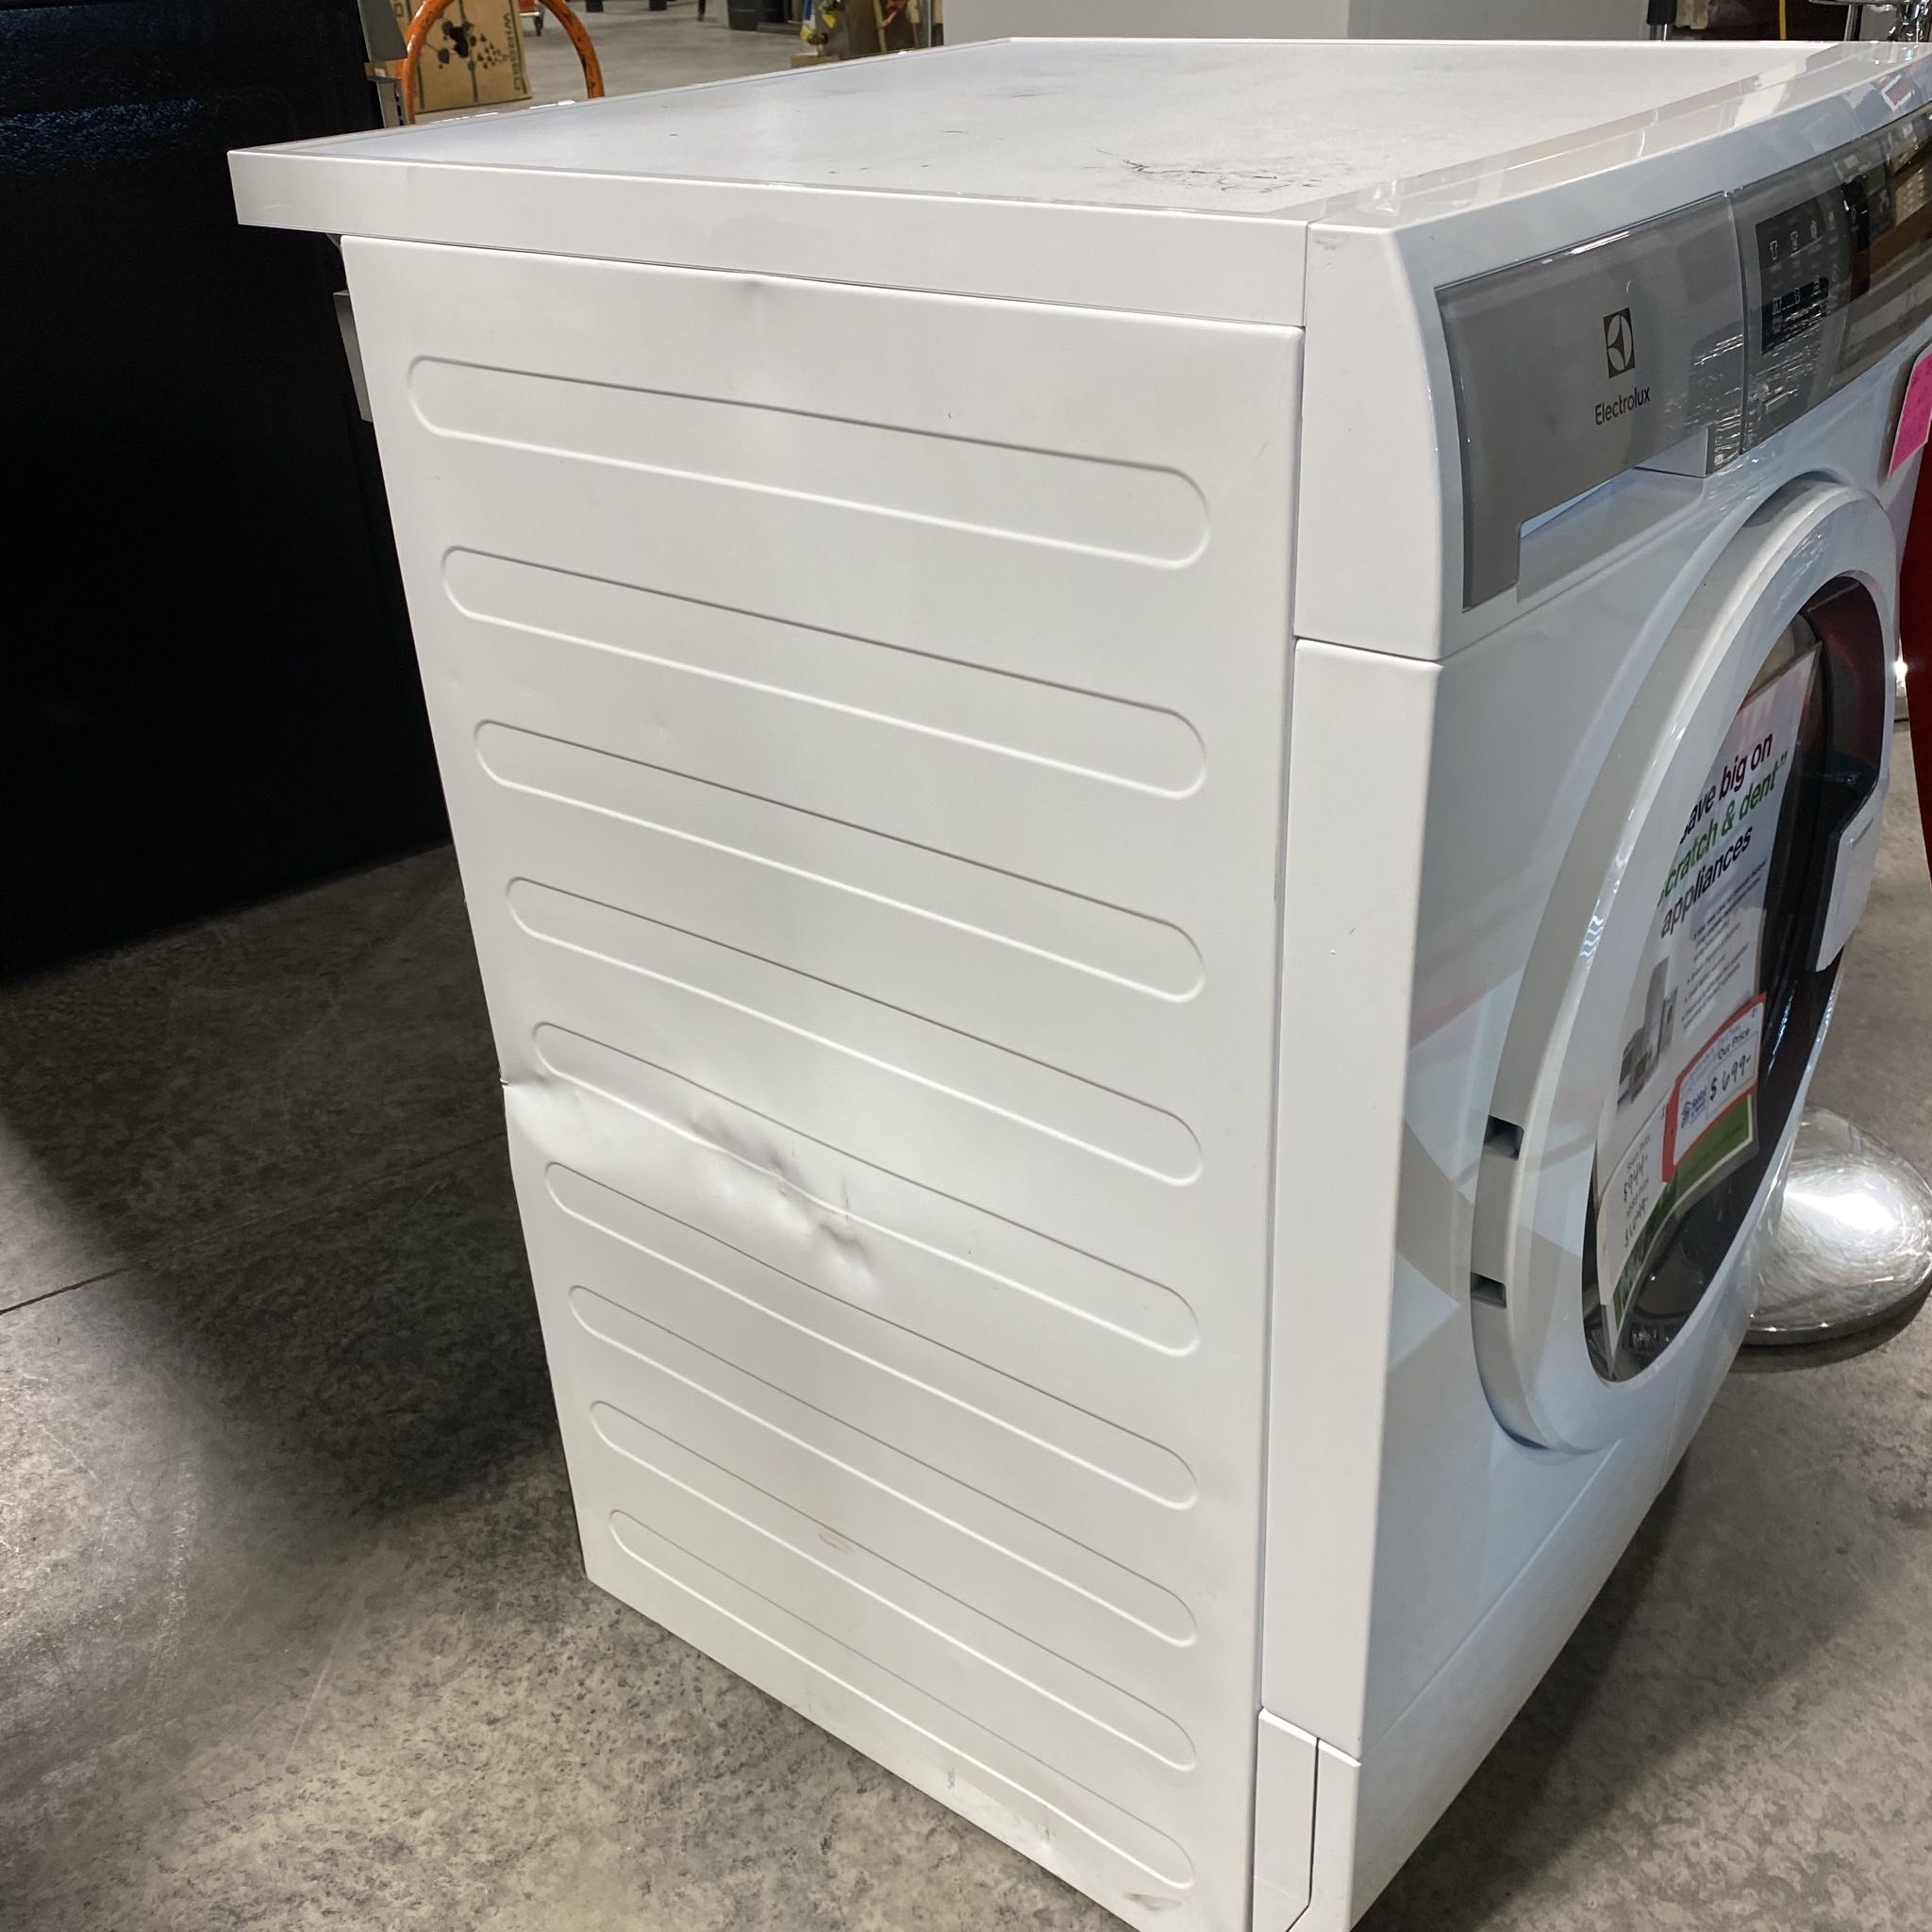 I1- Scratch and Dent Electrolux White 4.0 cu.ft Ventless Electric Dryer EFDE210TIW/2D00615764